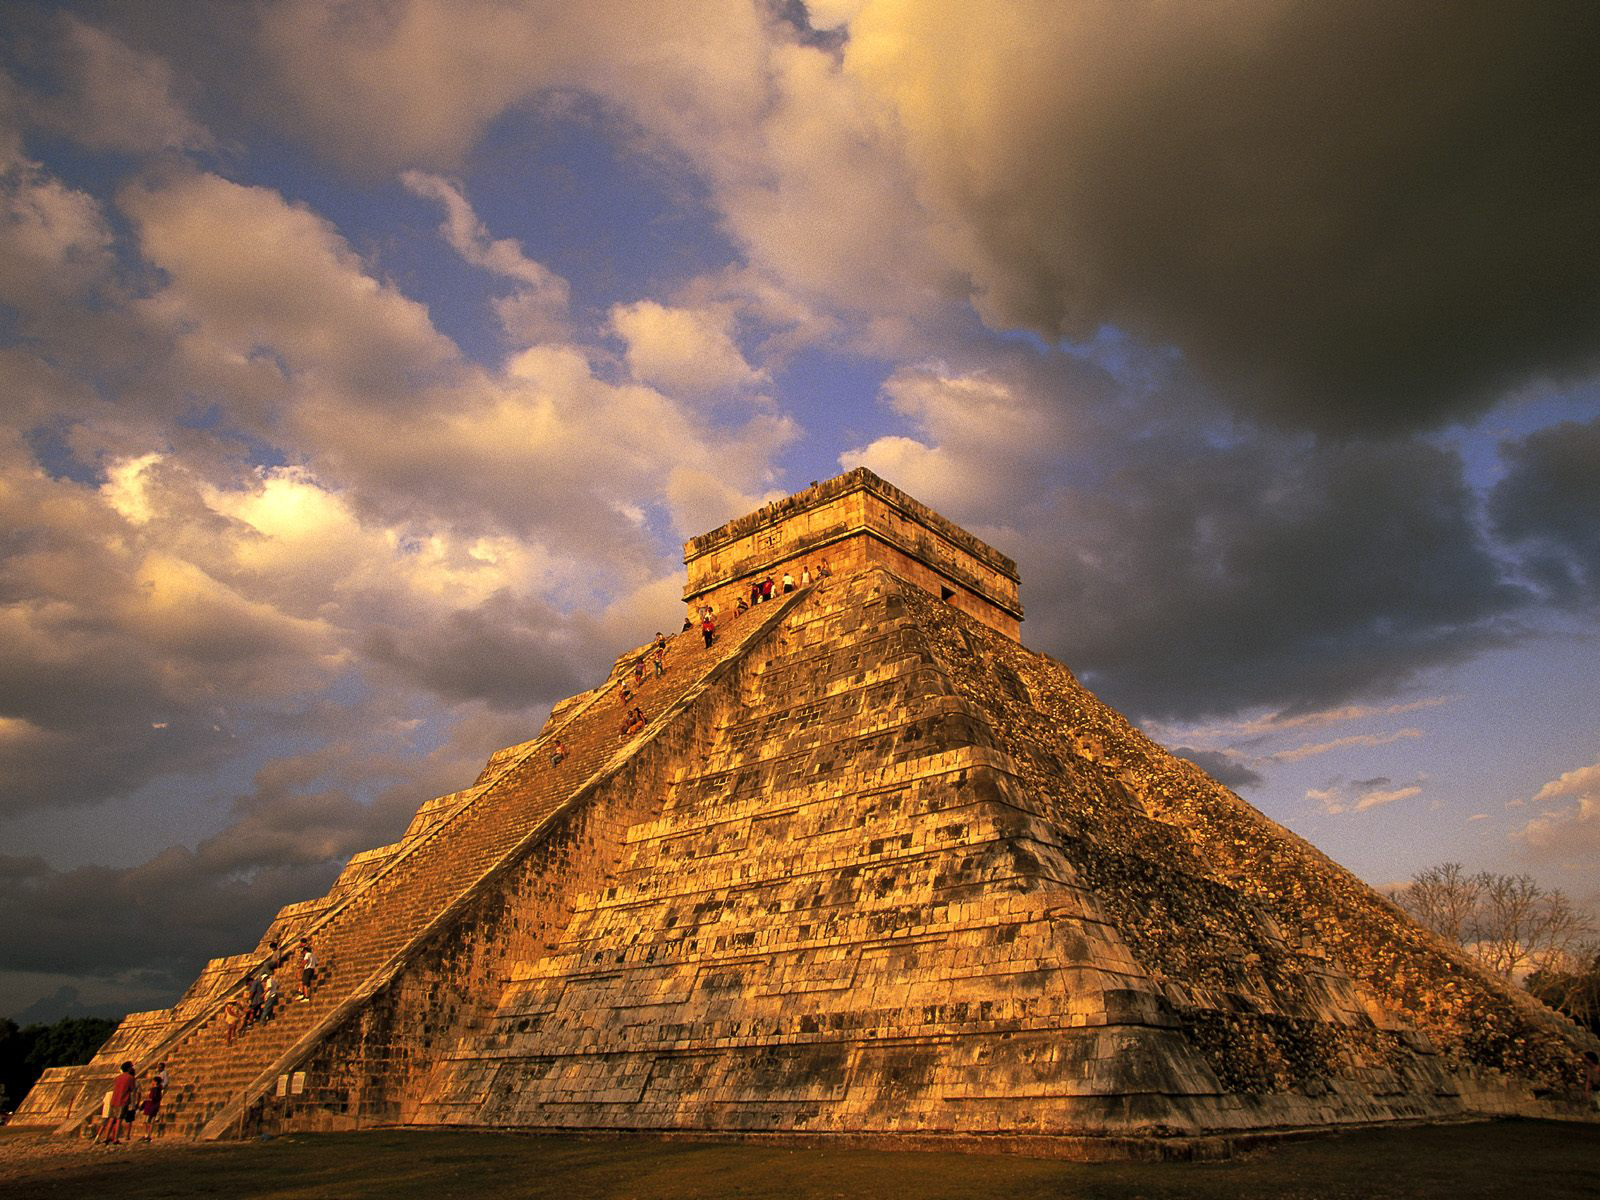 Pyramid at Chich&eacuten Itz&aacute, Yucatan Peninsula, Mexico